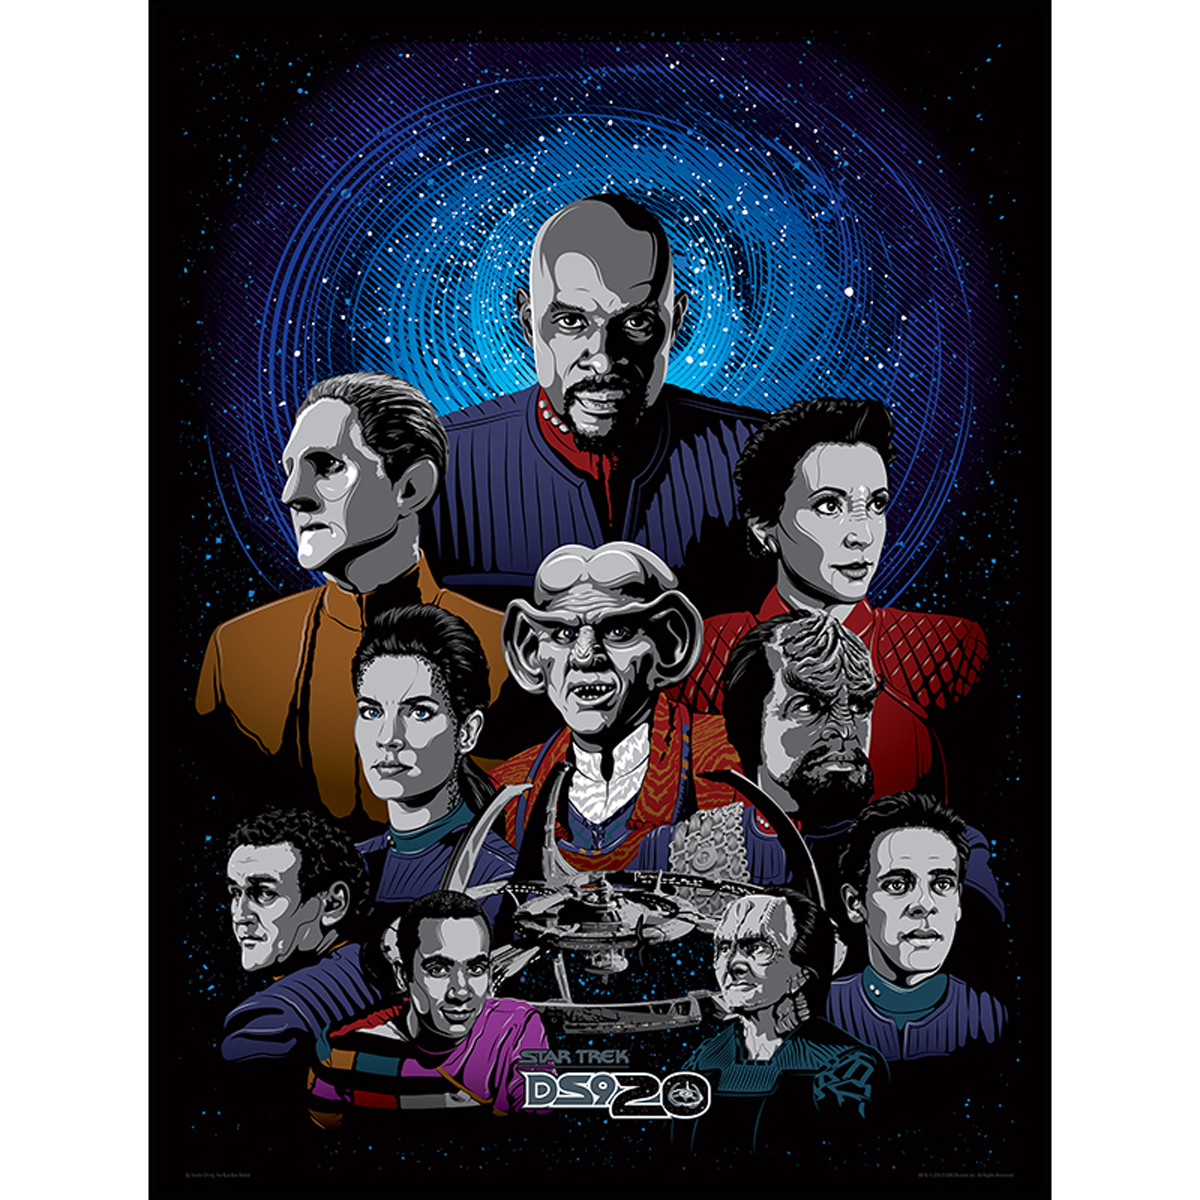 Star Trek Deep Space 9 Character Lithograph [18x24]